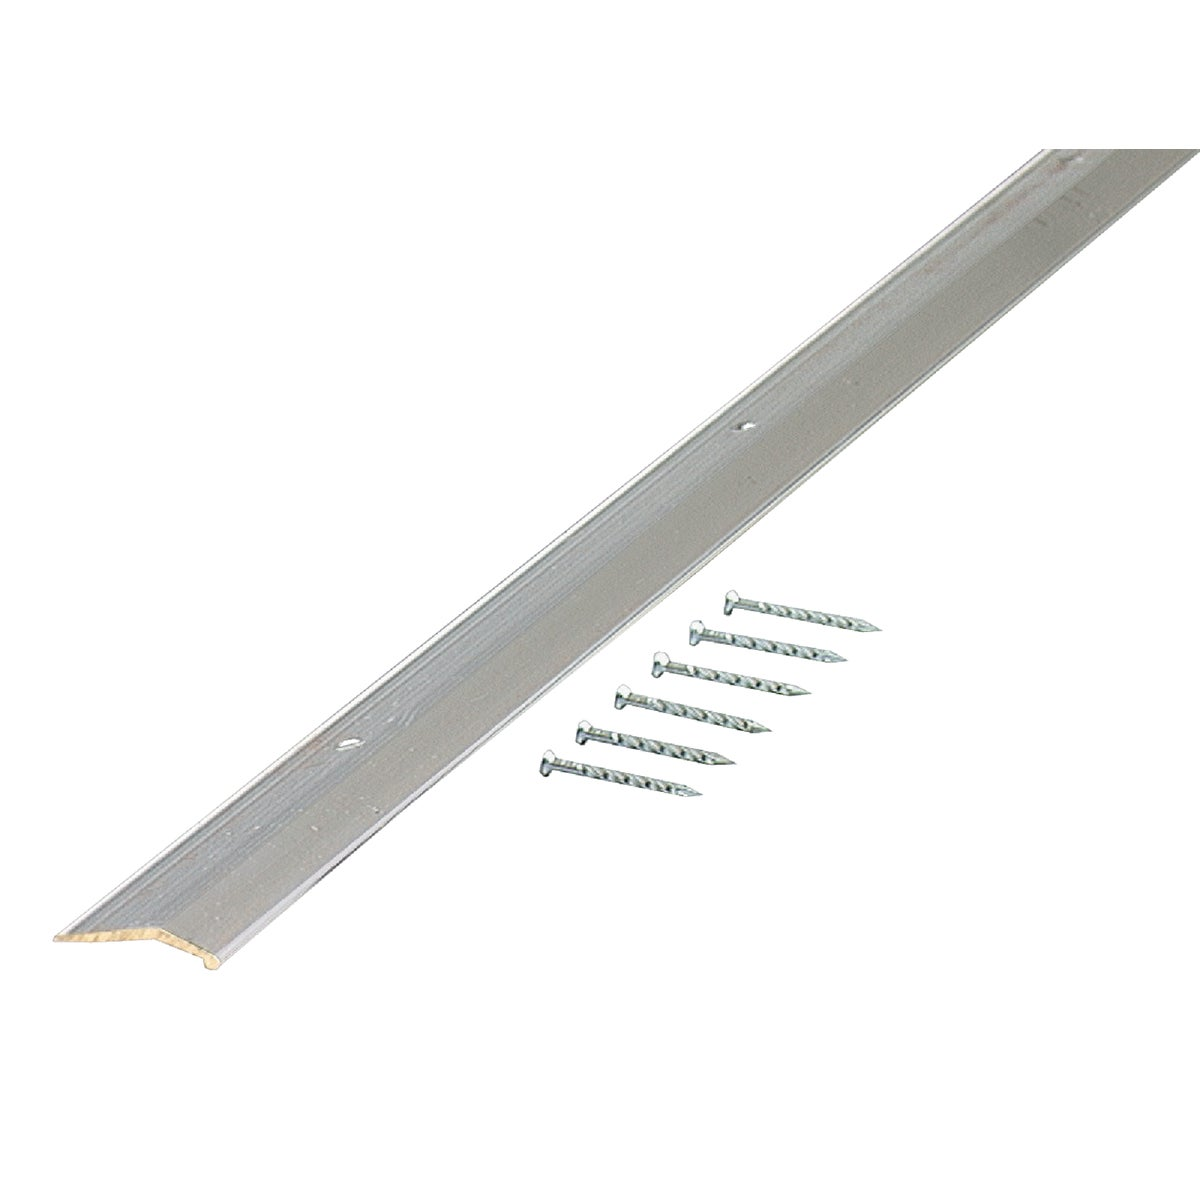 "7/8""X6' ALUM BINDER BAR - 66217 by M D Building Prod"